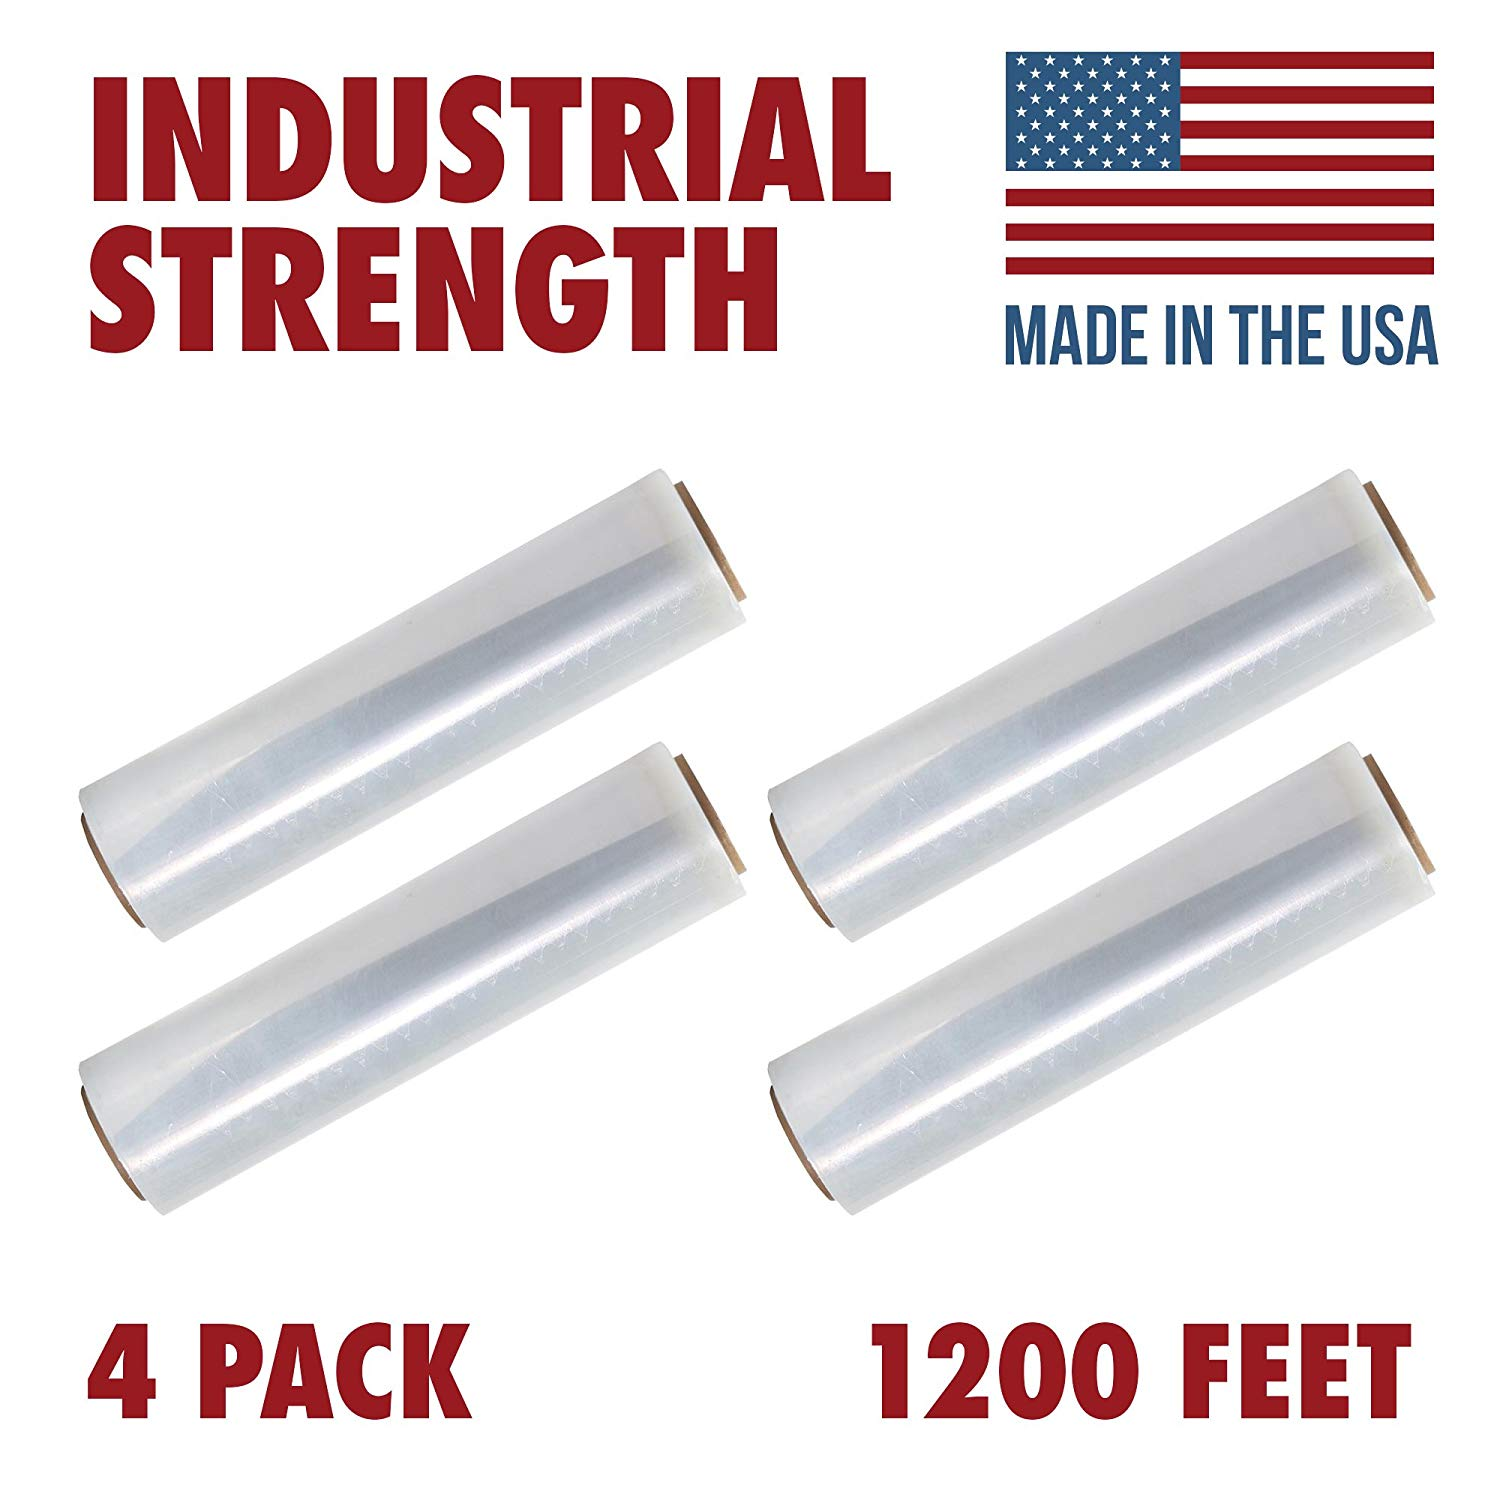 Stretch Film Wrap 60 Gauge Packing Shrink Wrap Roll 18 Inch x 2000 Feet 4 Pack Clear